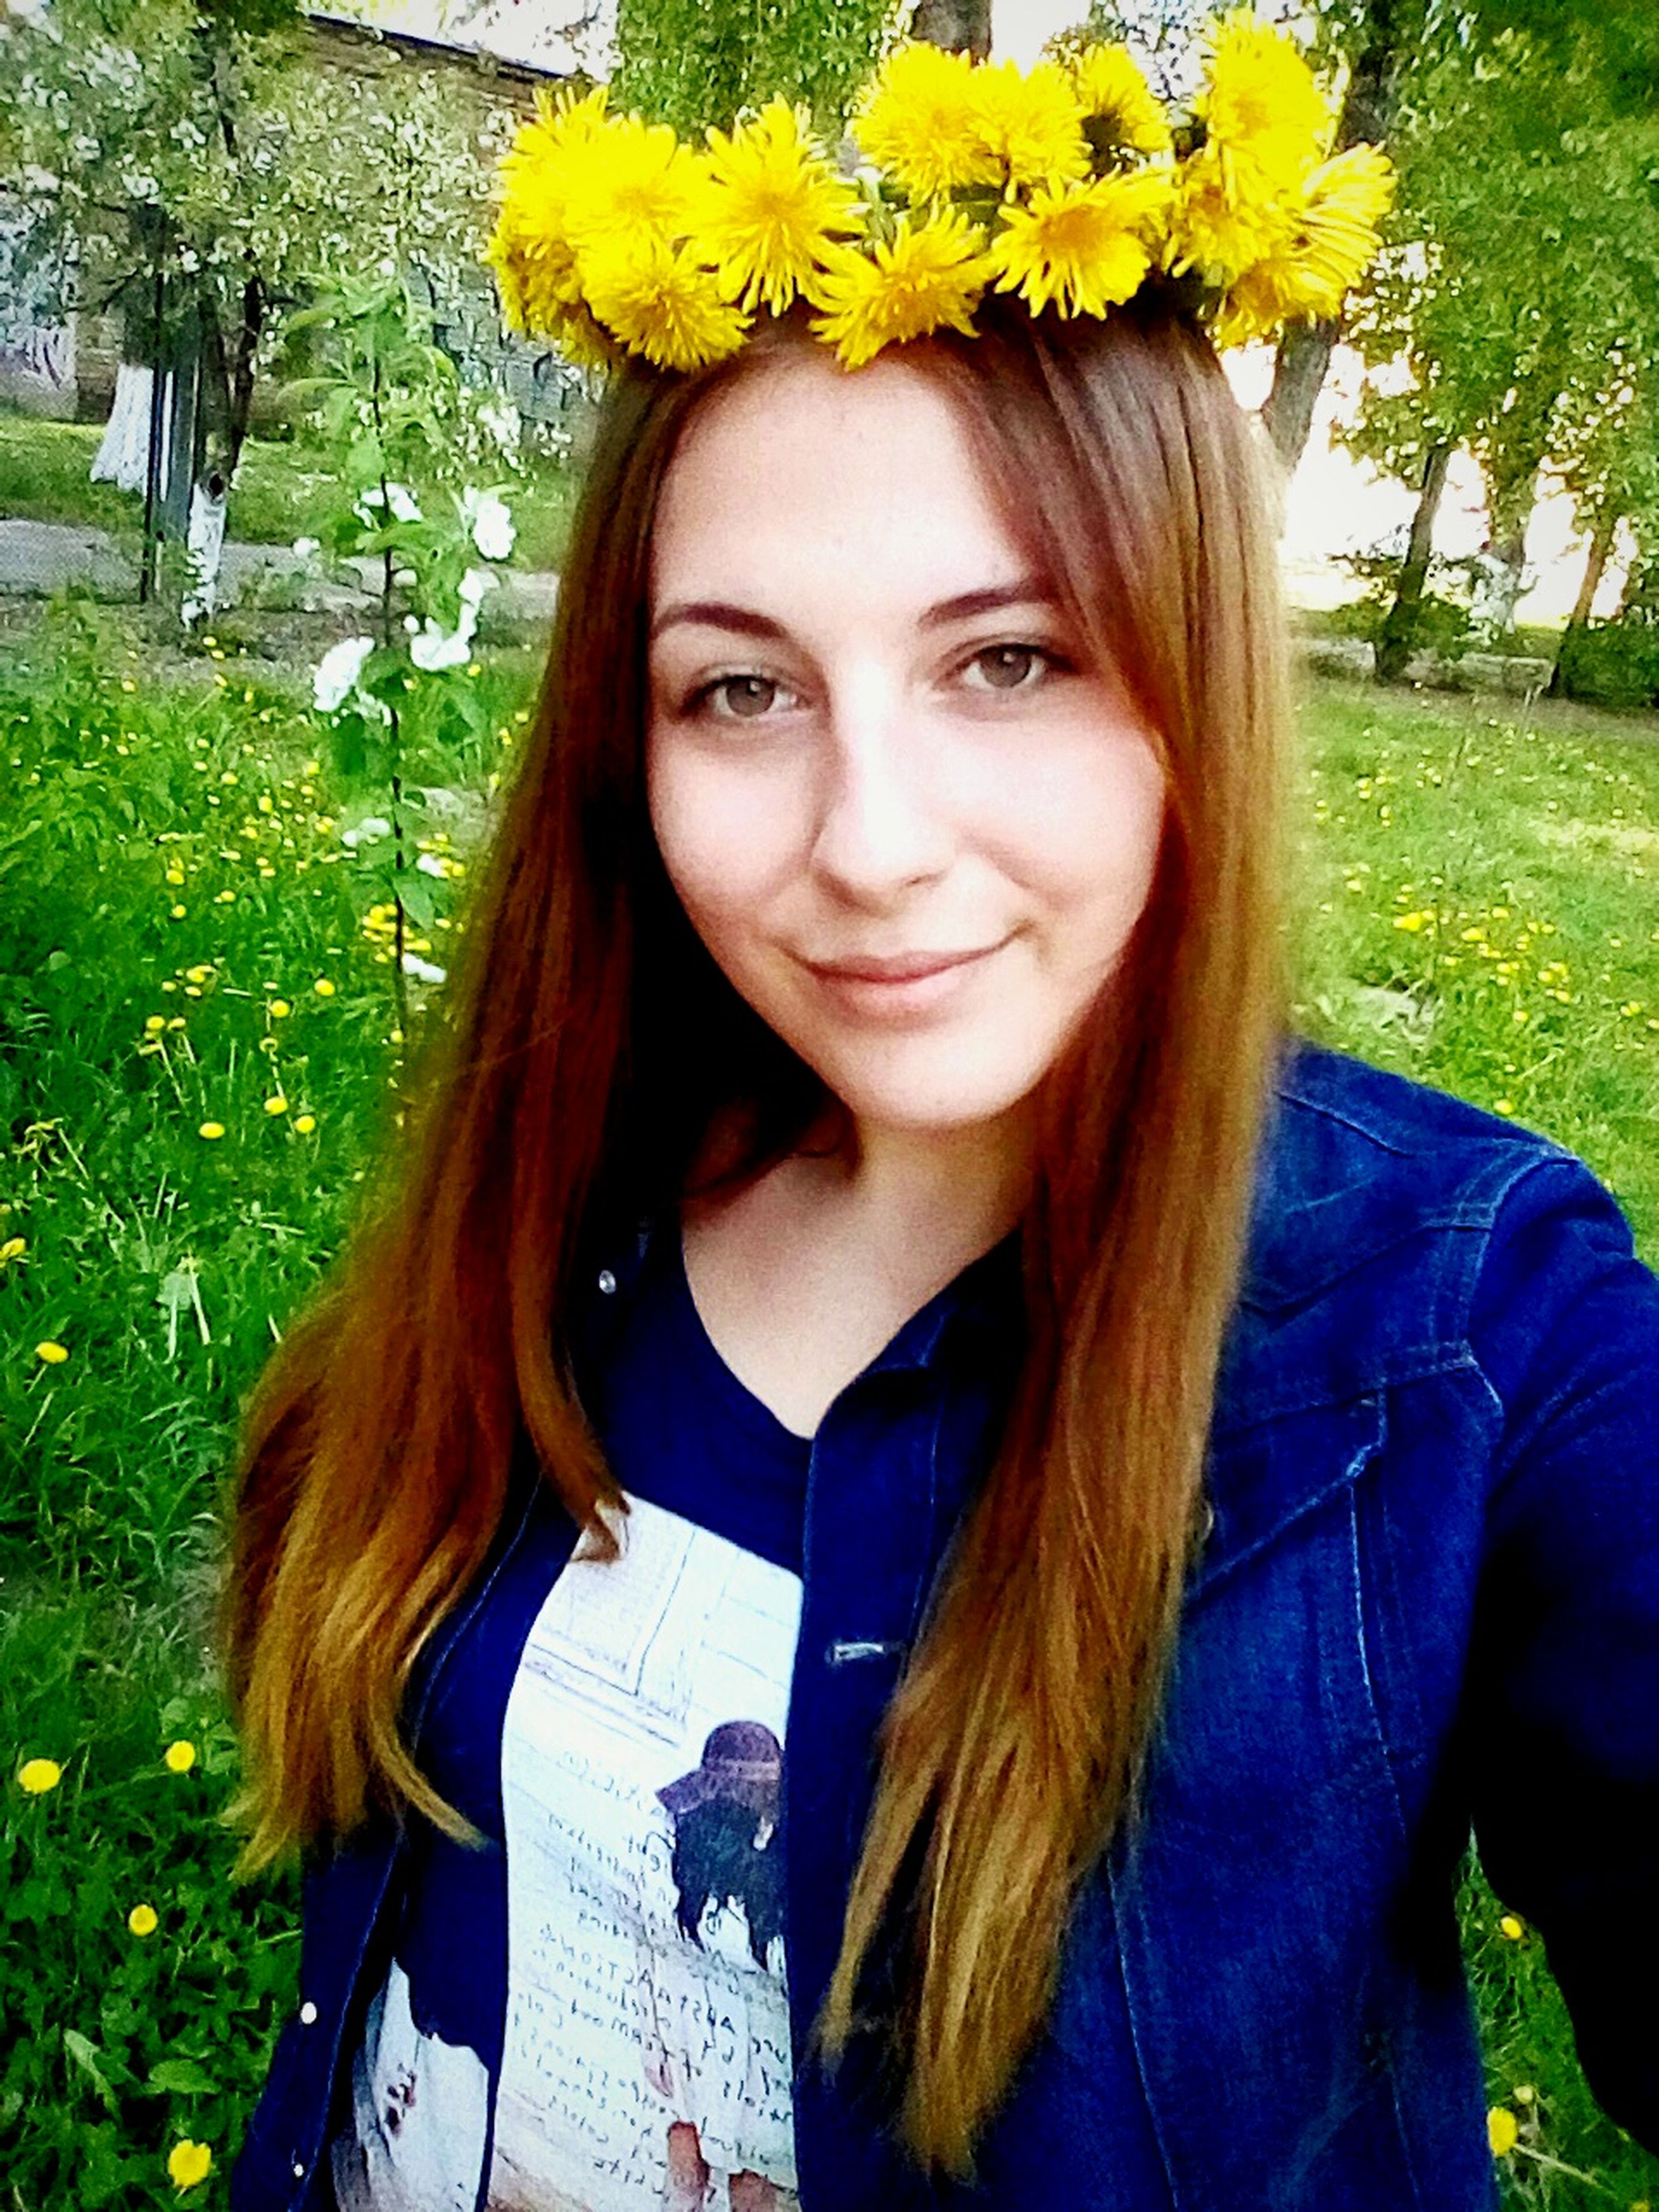 looking at camera, portrait, front view, flower, real people, young women, young adult, smiling, one person, day, beautiful woman, outdoors, long hair, lawn, grass, casual clothing, nature, leisure activity, lifestyles, happiness, park - man made space, standing, close-up